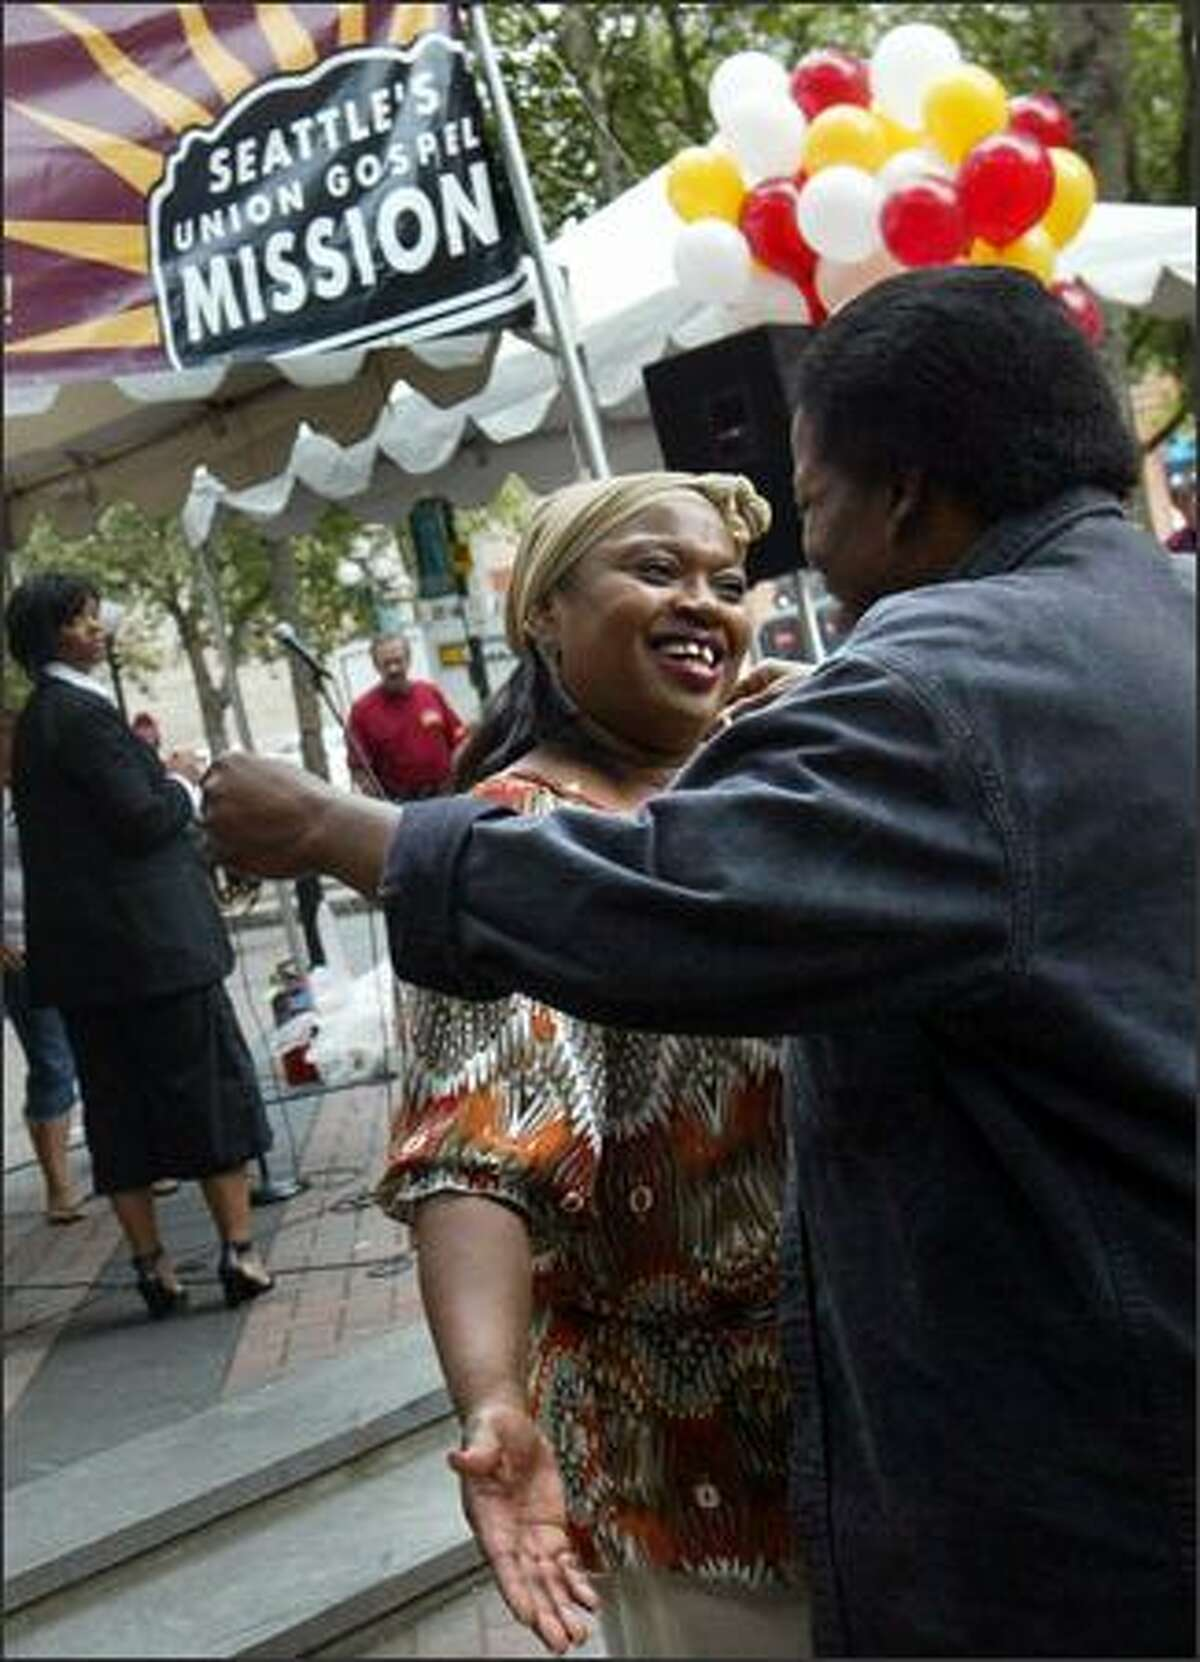 Gospel singer Josephine Howell hugs Raama Hunter at the Union Gospel Mission's 75th anniversary celebration Tuesday at Occidental Park. During her performance, Howell spoke about how she lived on the streets with her children for five years until she discovered the Union Gospel Mission.